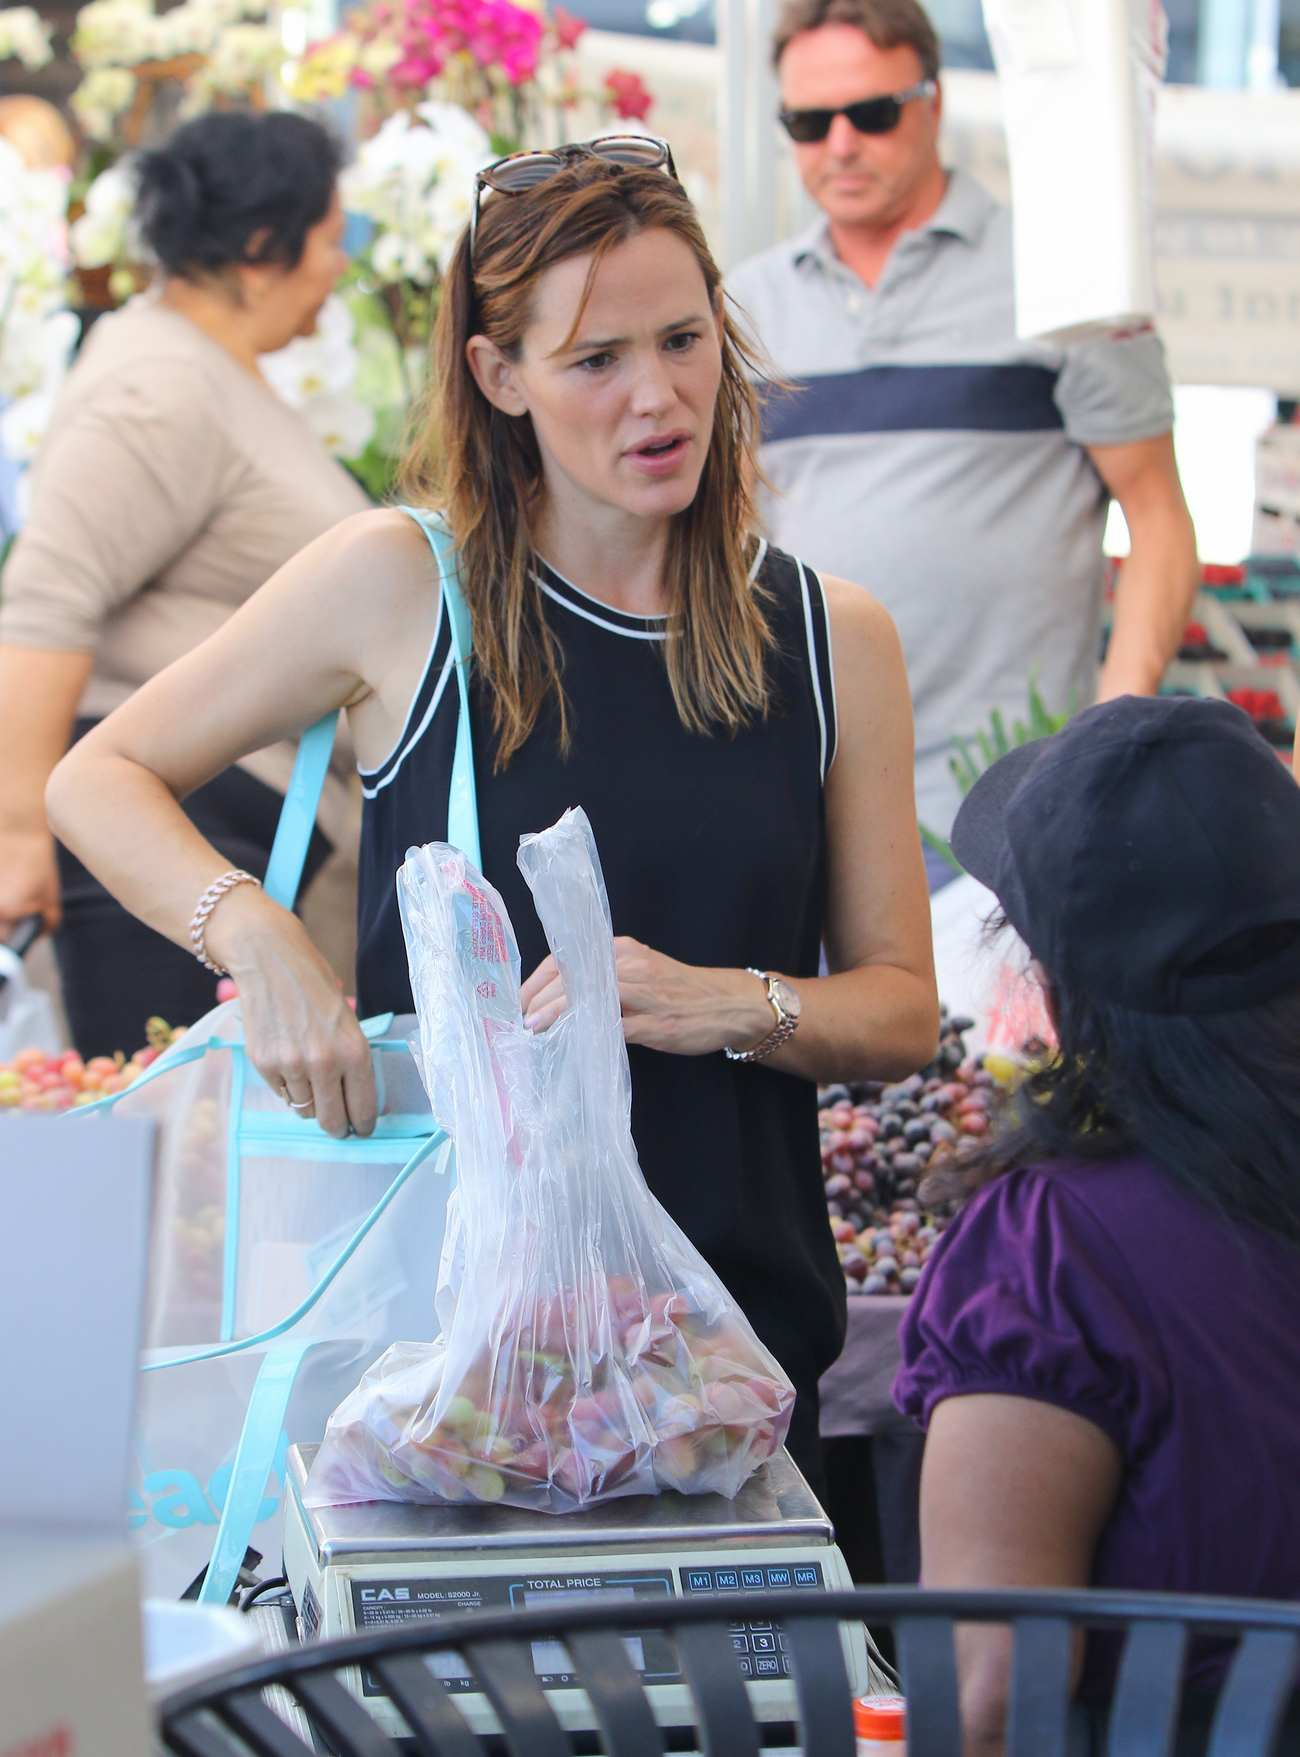 Ben Affleck and Jennifer Garner Family Outing in Farmers Market-1